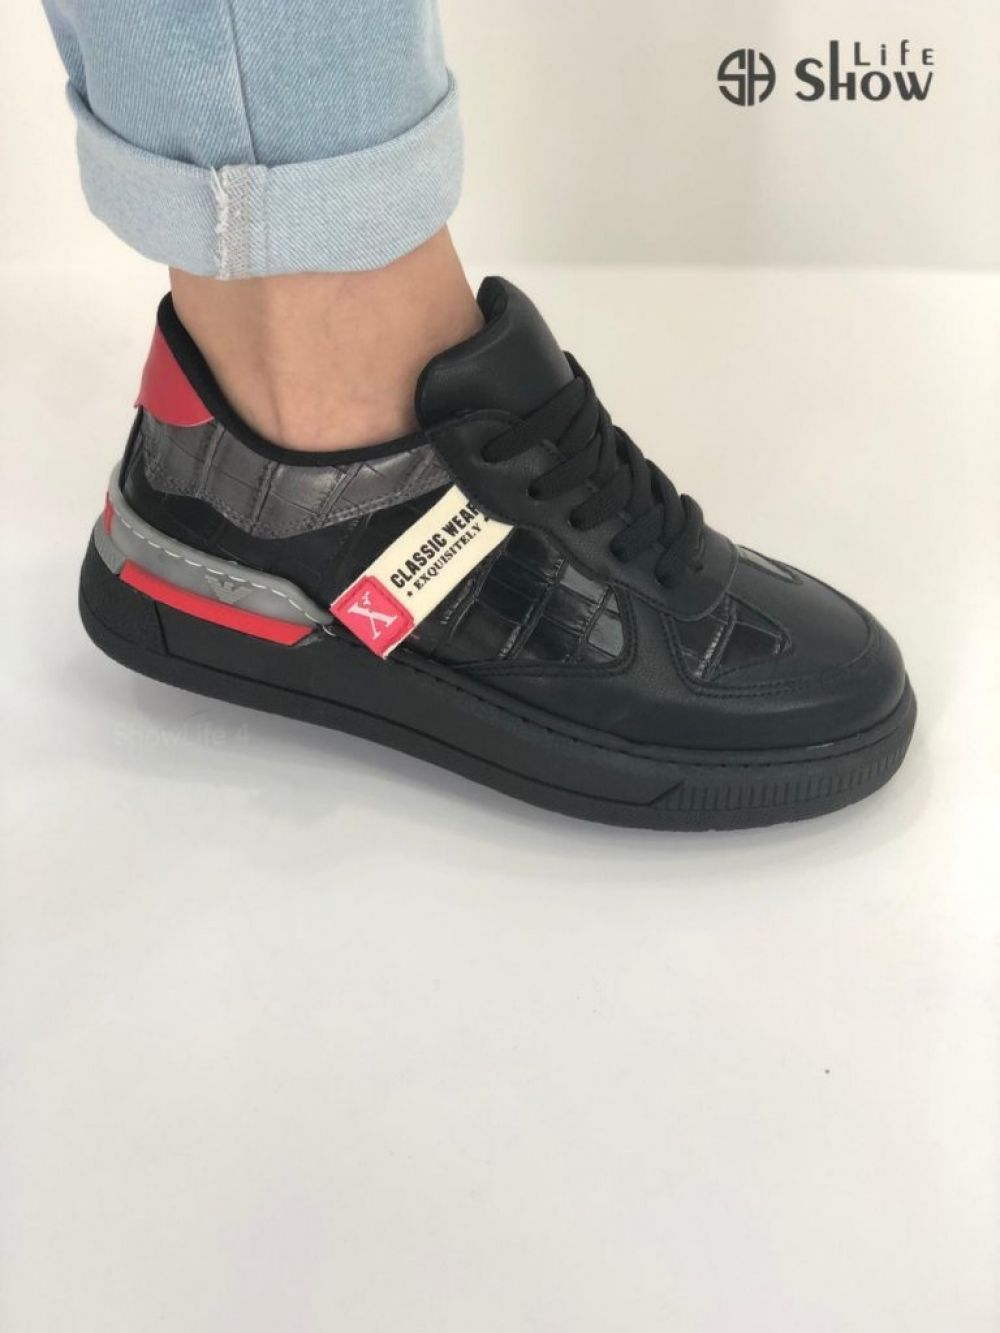 ShowLife Women Athletic Shoes Sizes 36-40 Top Quality ✨ Wholesale from Turkey ✨ Best of Turkish Made products Click picture to view details of this product Share on your page #YeniExpo #madeinturkey 🇹🇷🇹🇷🇹🇷 #SupportTurkey